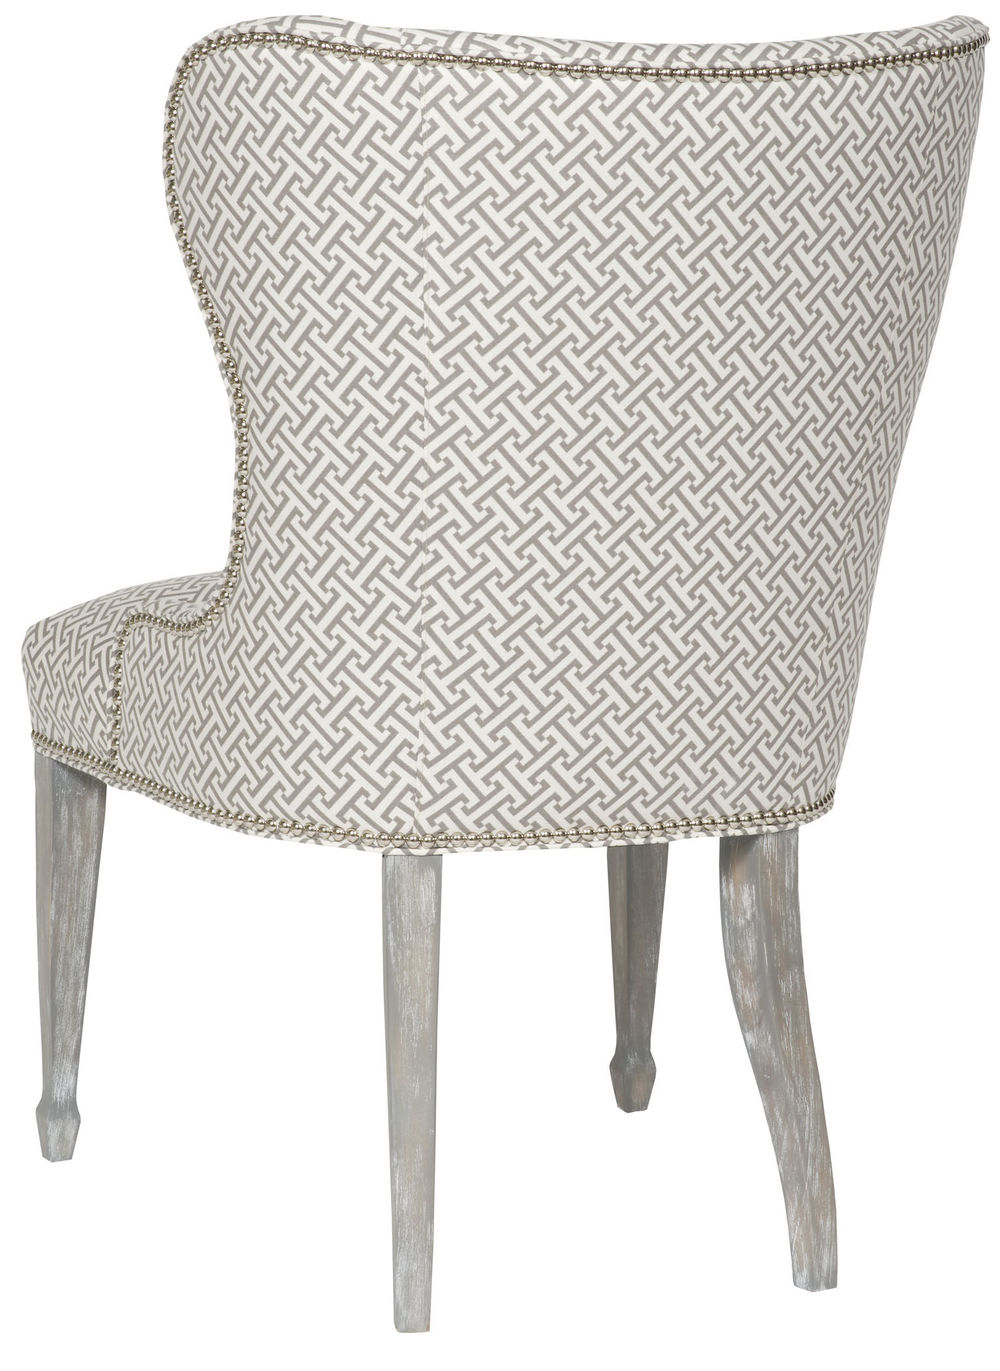 VANGUARD FURNITURE COMPANY - Ava Side Chair